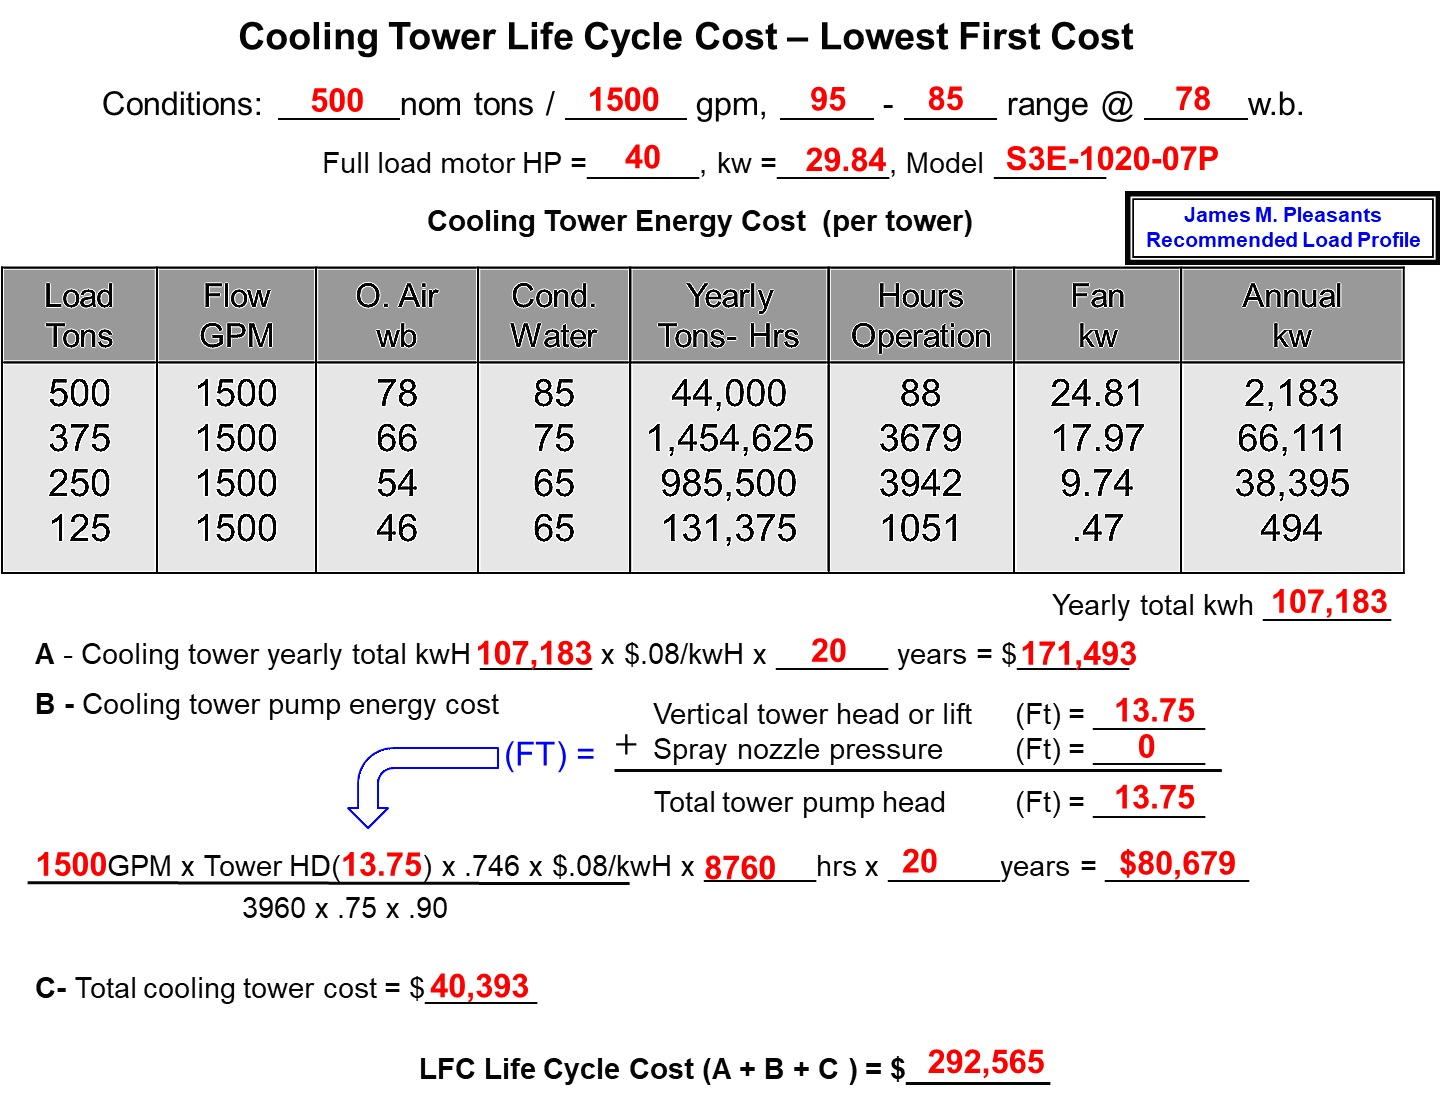 Completed_Cooling_Tower_Lifecycle_Analysis_Worksheet%281%29.jpg